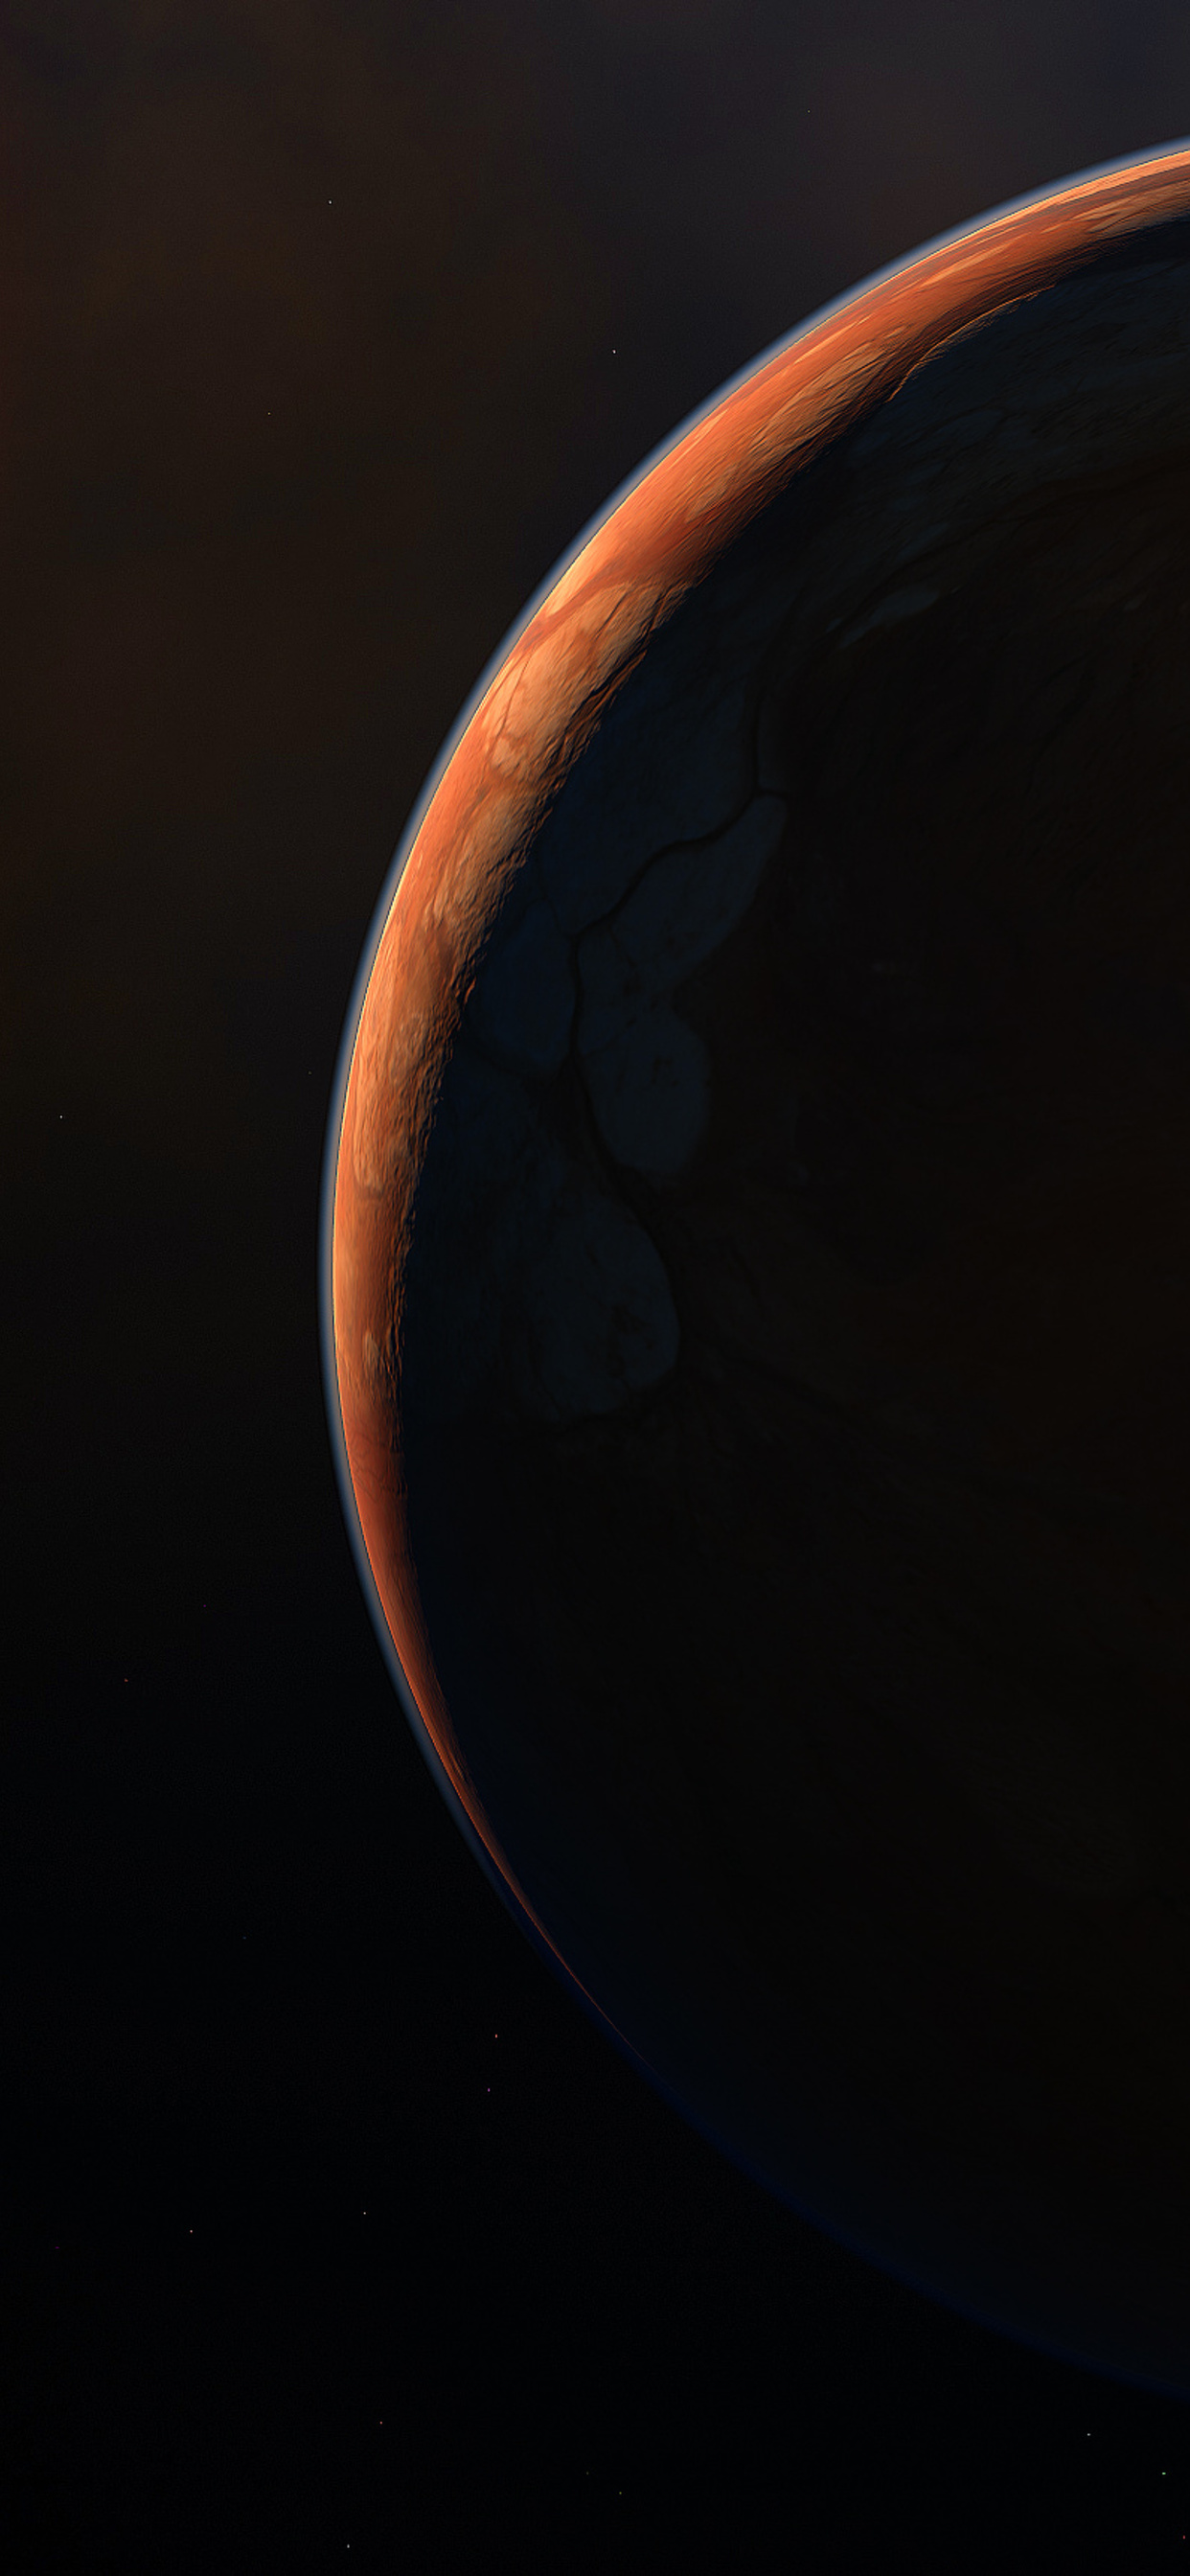 1242x2688 Scifi Space Planet 4k Iphone Xs Max Hd 4k Wallpapers